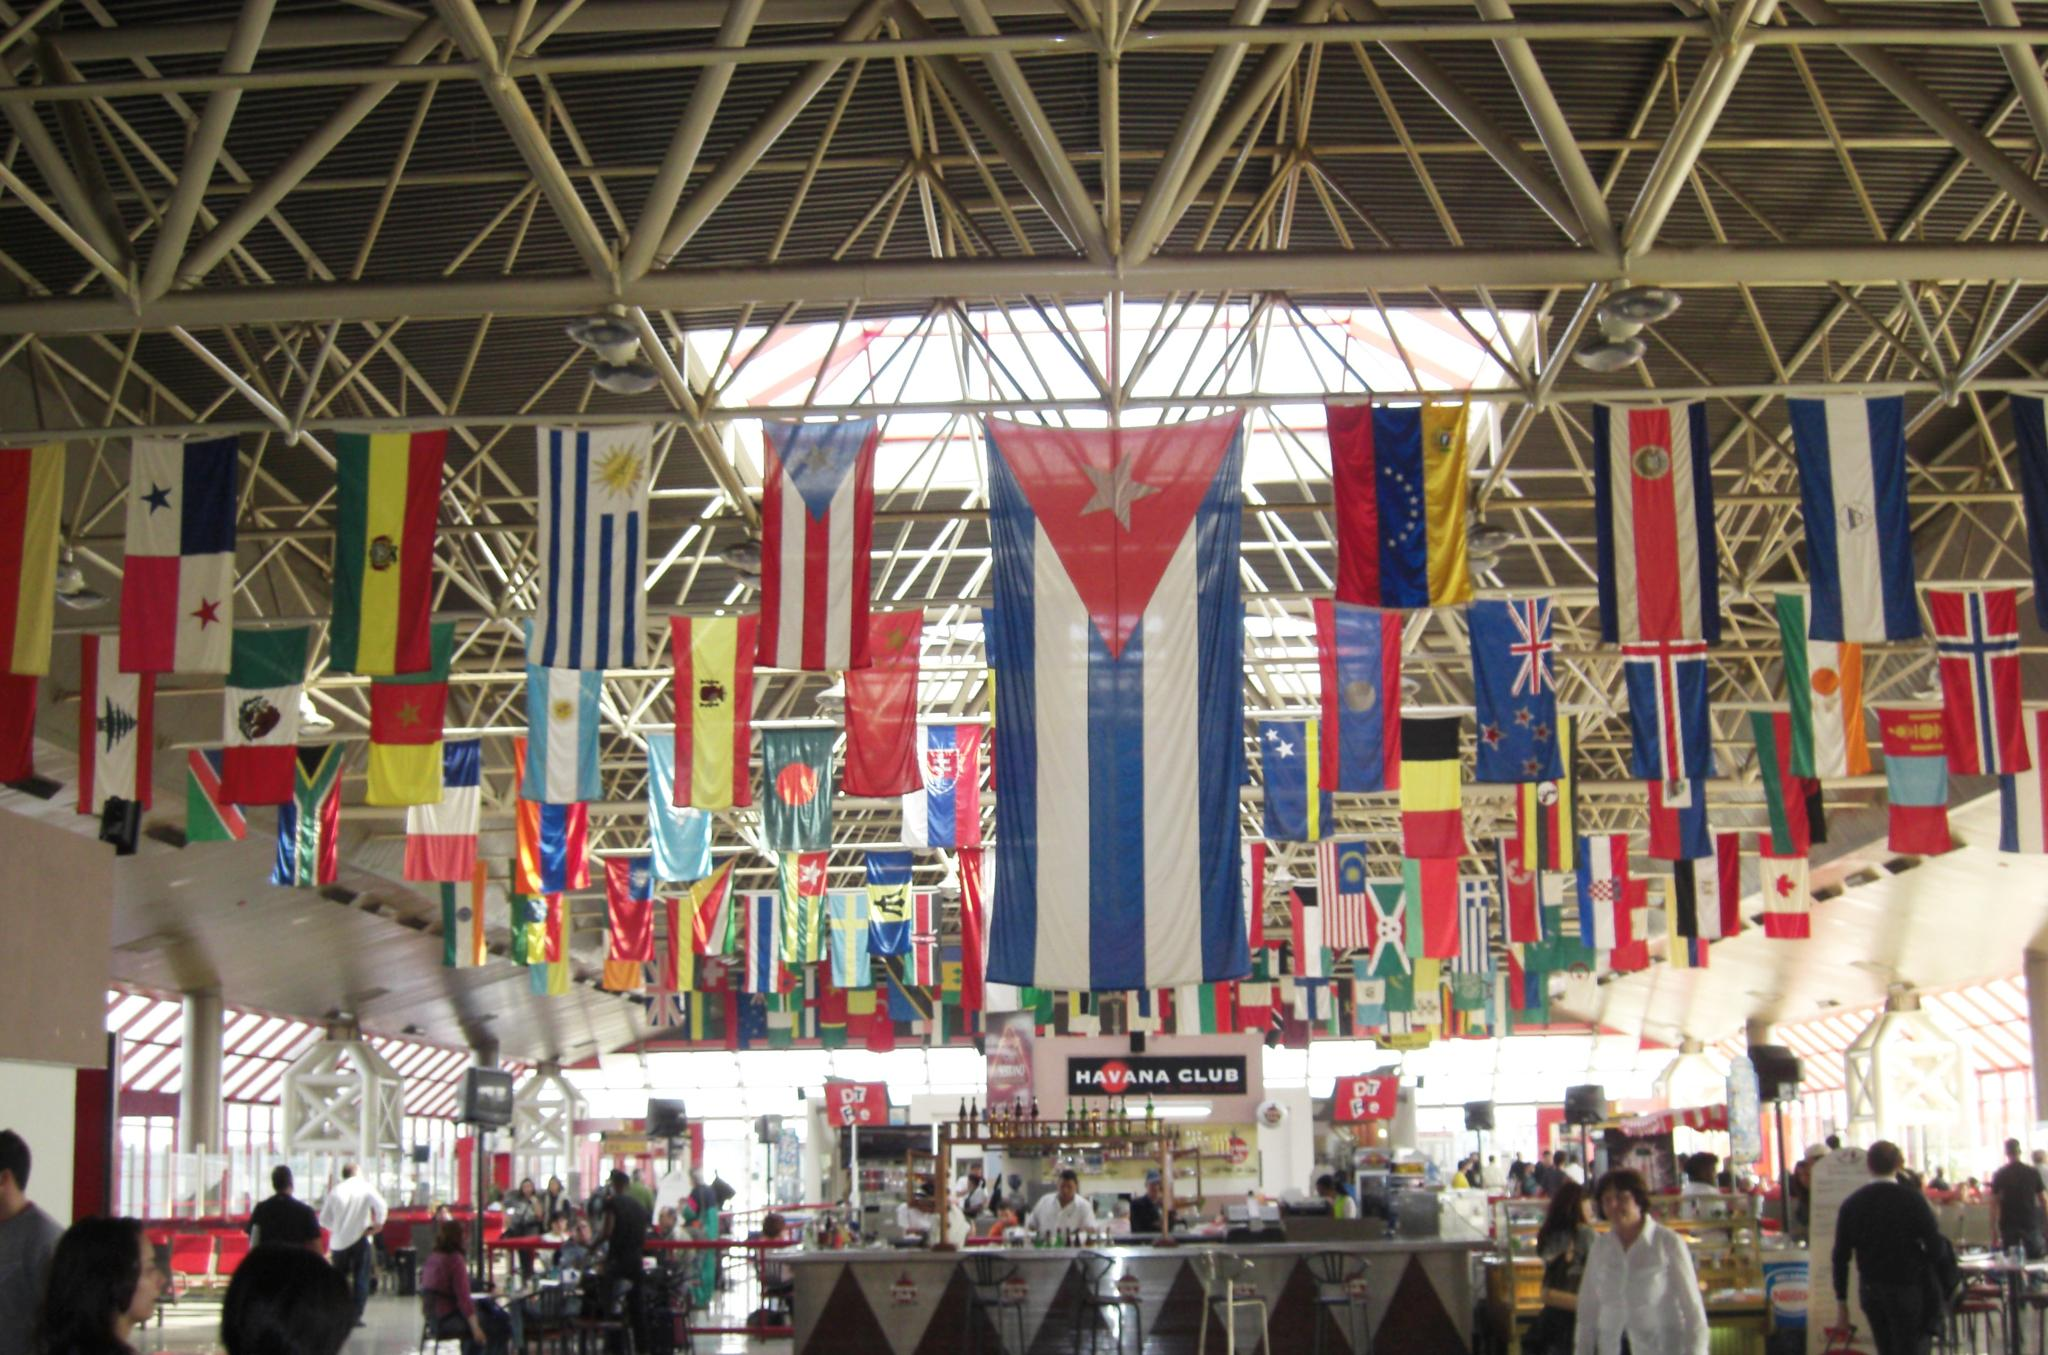 Flags of the World, Havana Airport by steve.talbot.180